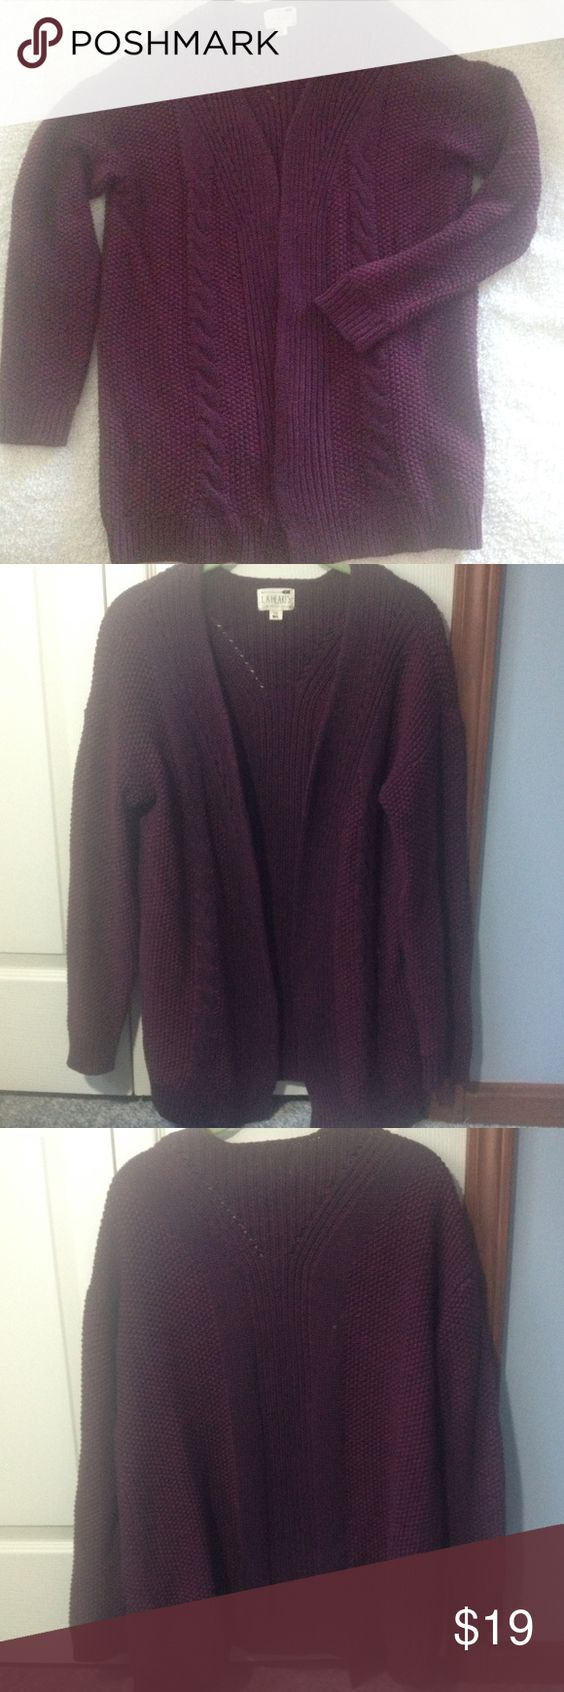 Pac Sun cardigan. M/L LA Hearts by Pac Sun cardigan sweater. Size Medium/Large.  Beautiful maroon color.  Thick, warm and cozy.  I absolutely love this item!  In excellent condition! LA Hearts Sweaters Cardigans